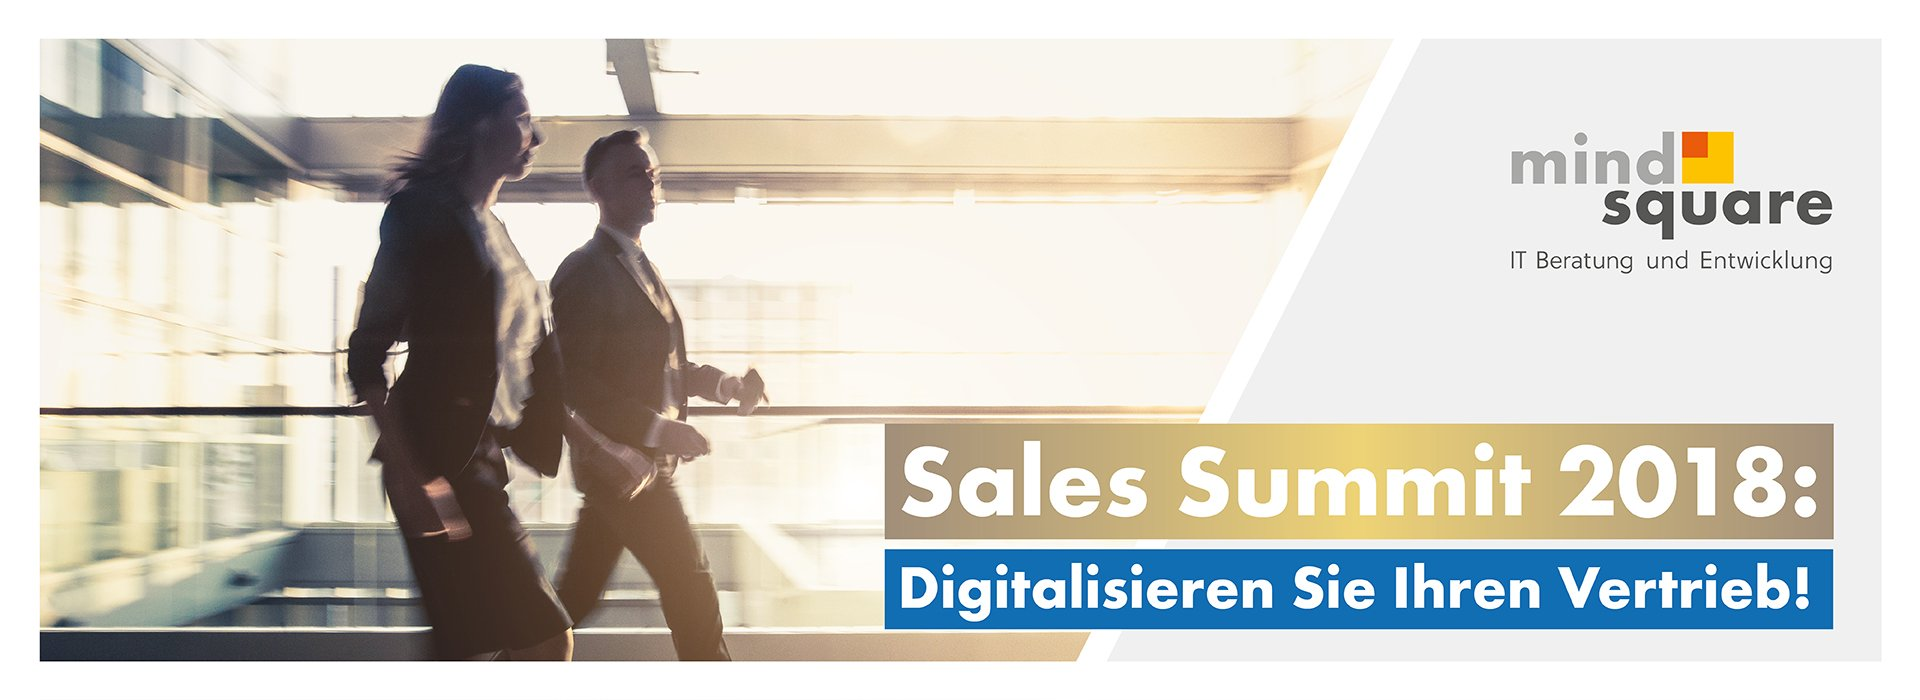 Sales-Summit-Header-1920x700px